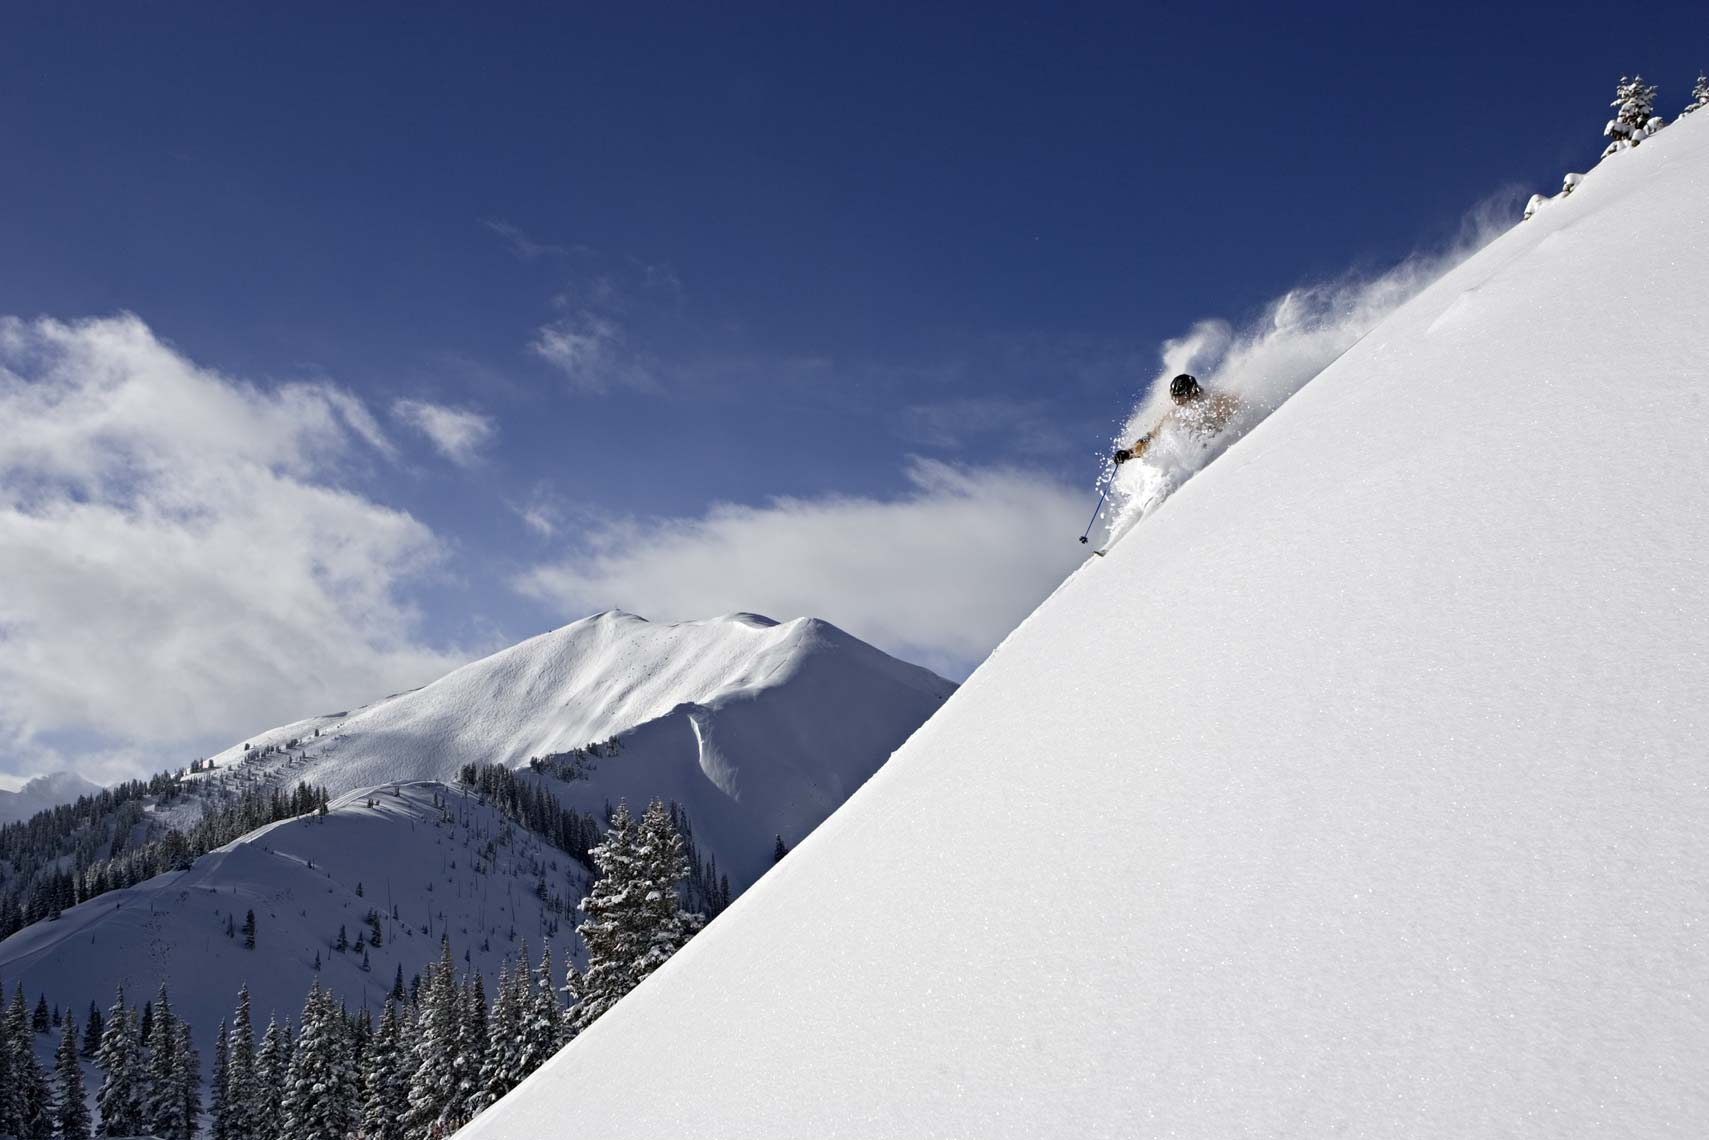 Tomas Zuccareno Photography | Skiing in Aspen, Colorado